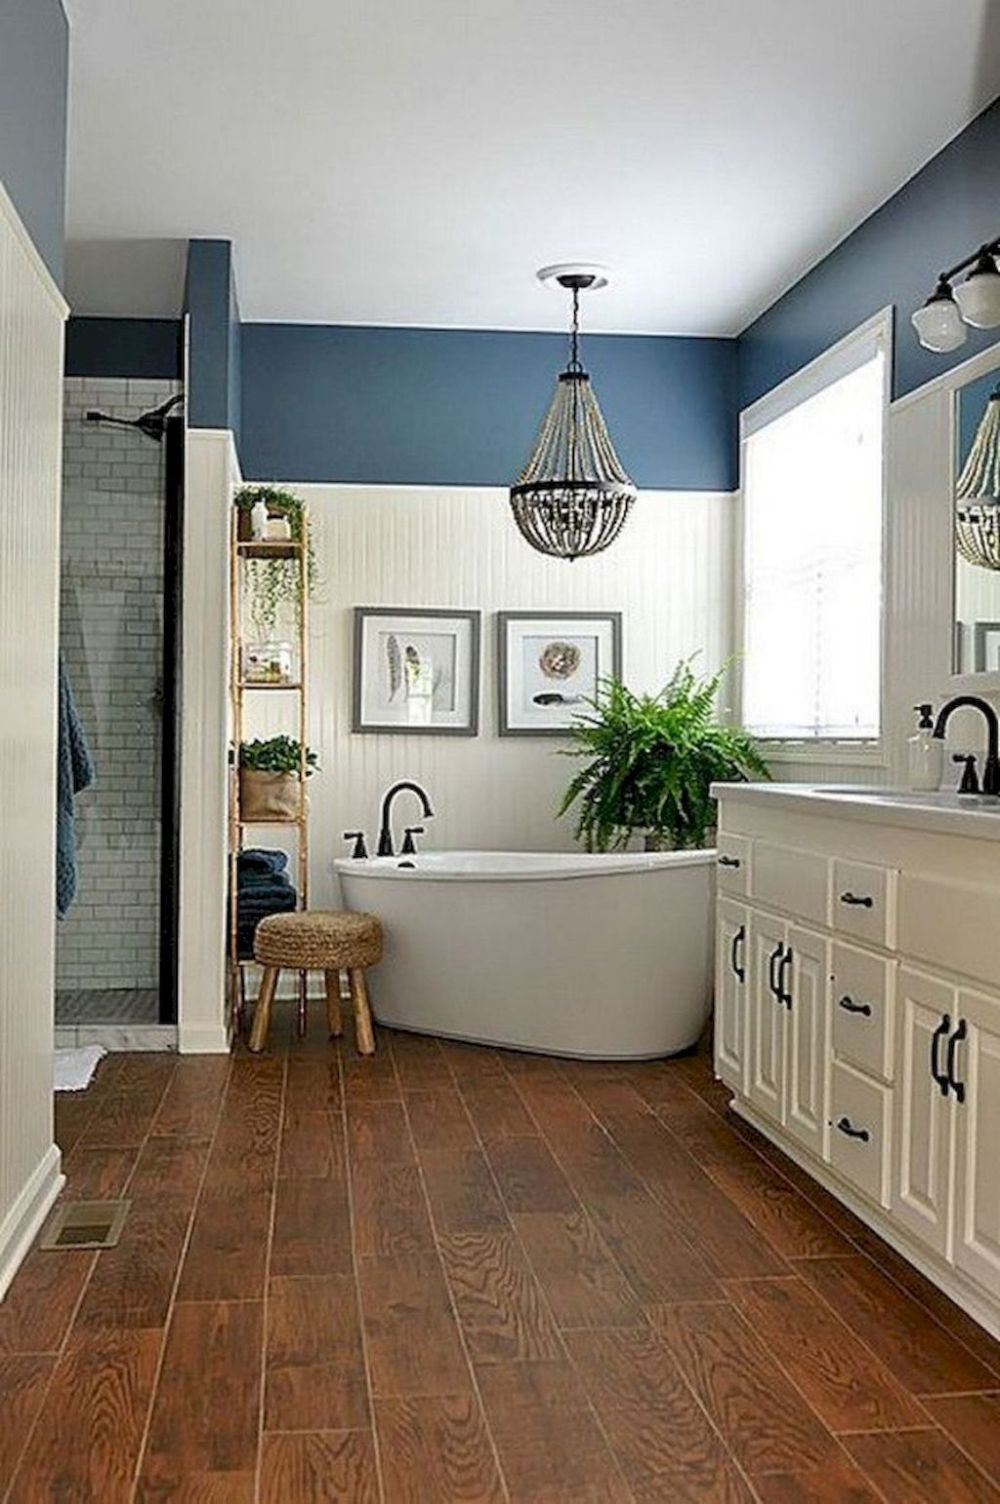 1572969148 918 20 beautiful blue rooms ideas to decorate with blue - 20 Beautiful Blue Rooms – Ideas To Decorate With Blue